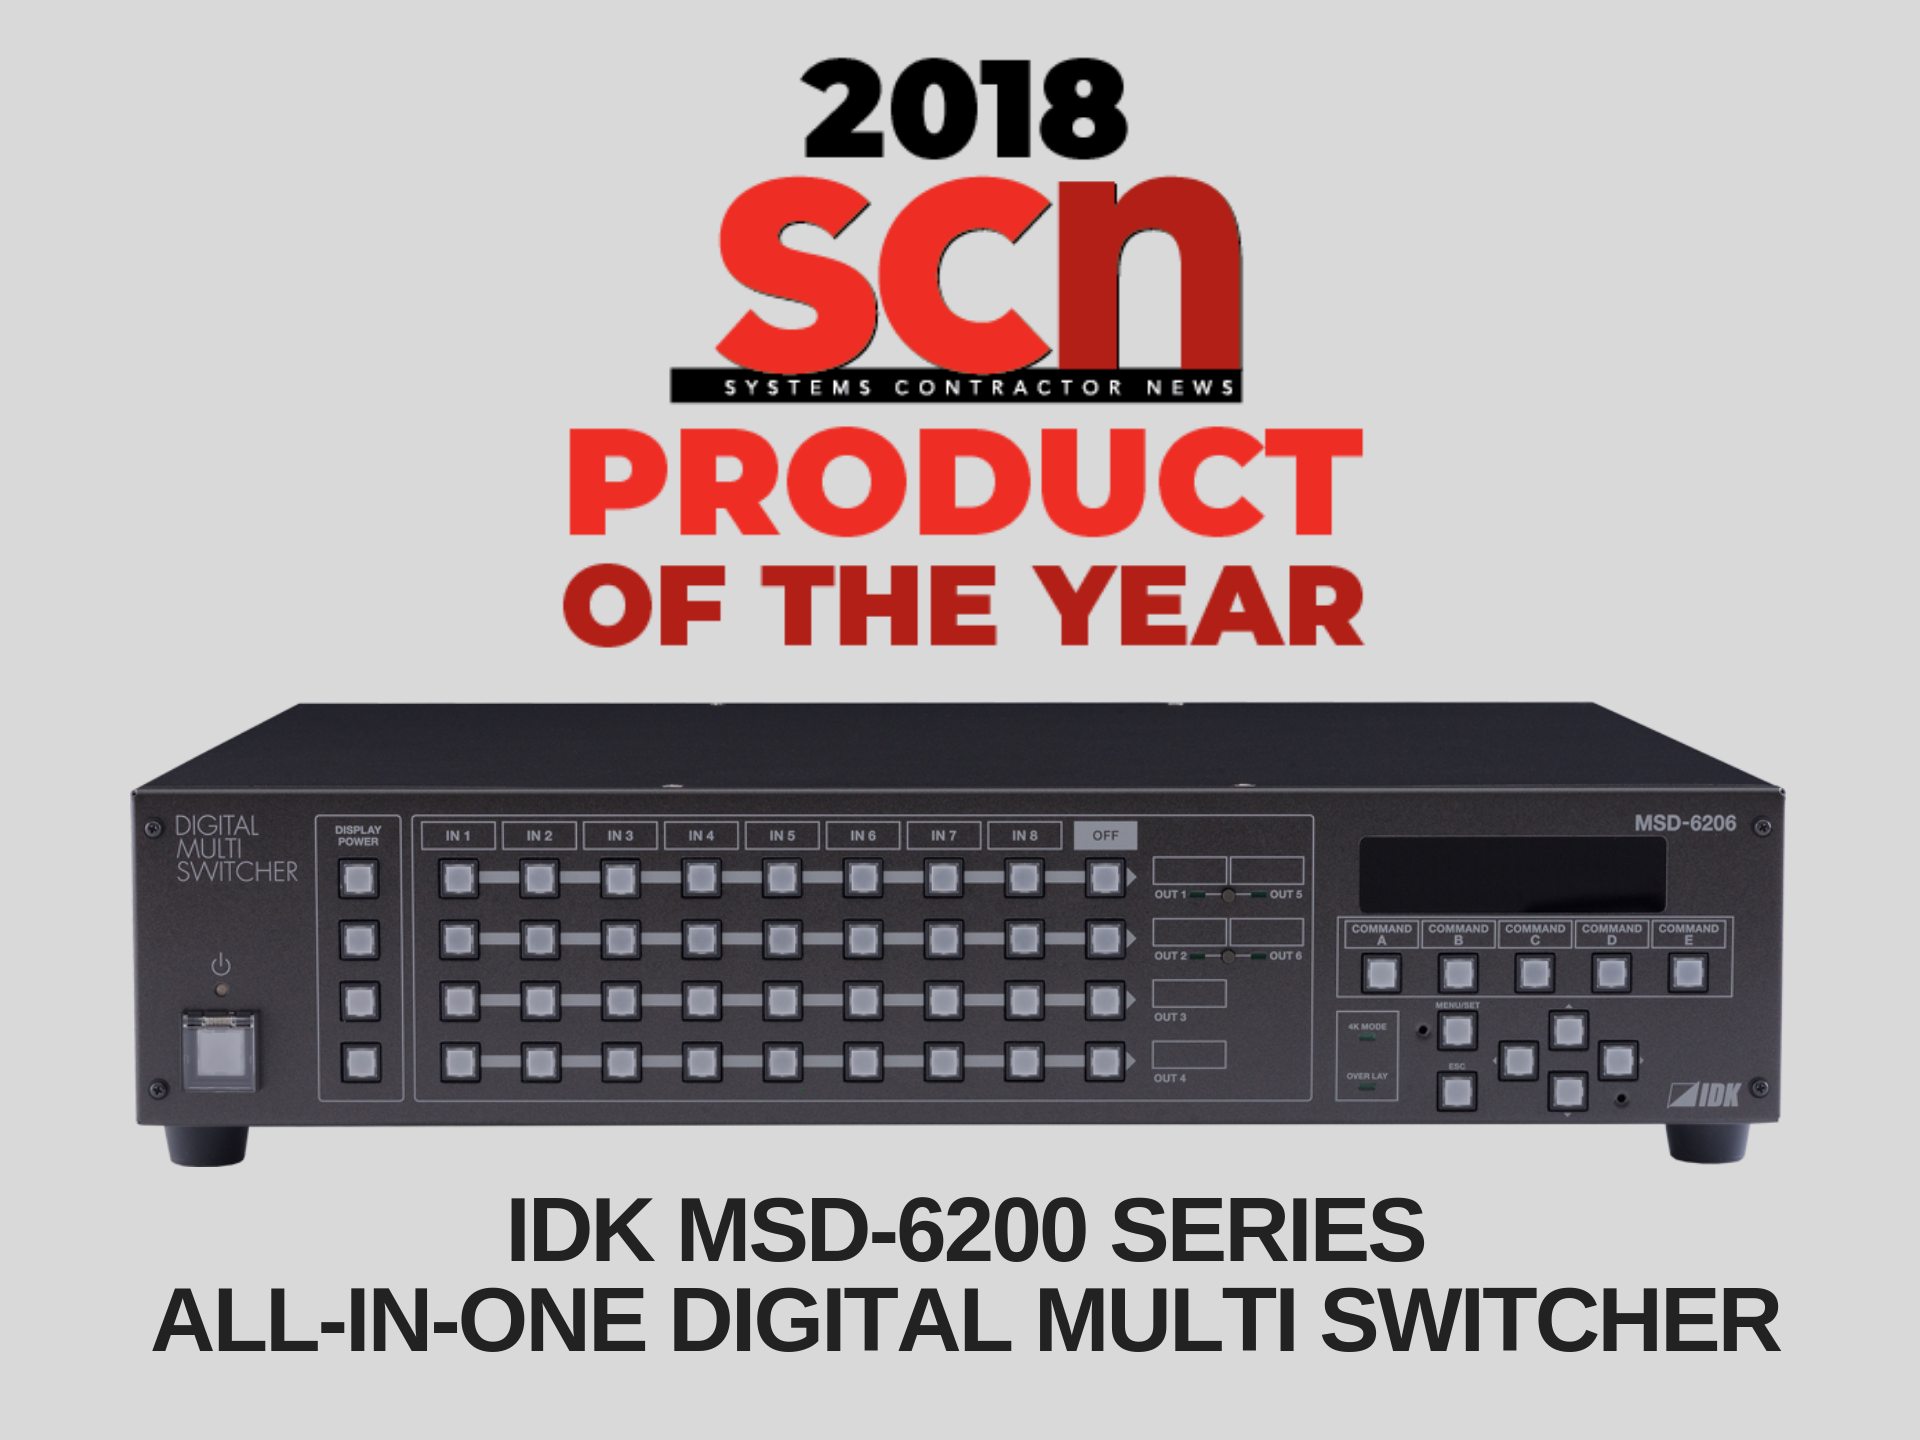 Product of the Year 2018